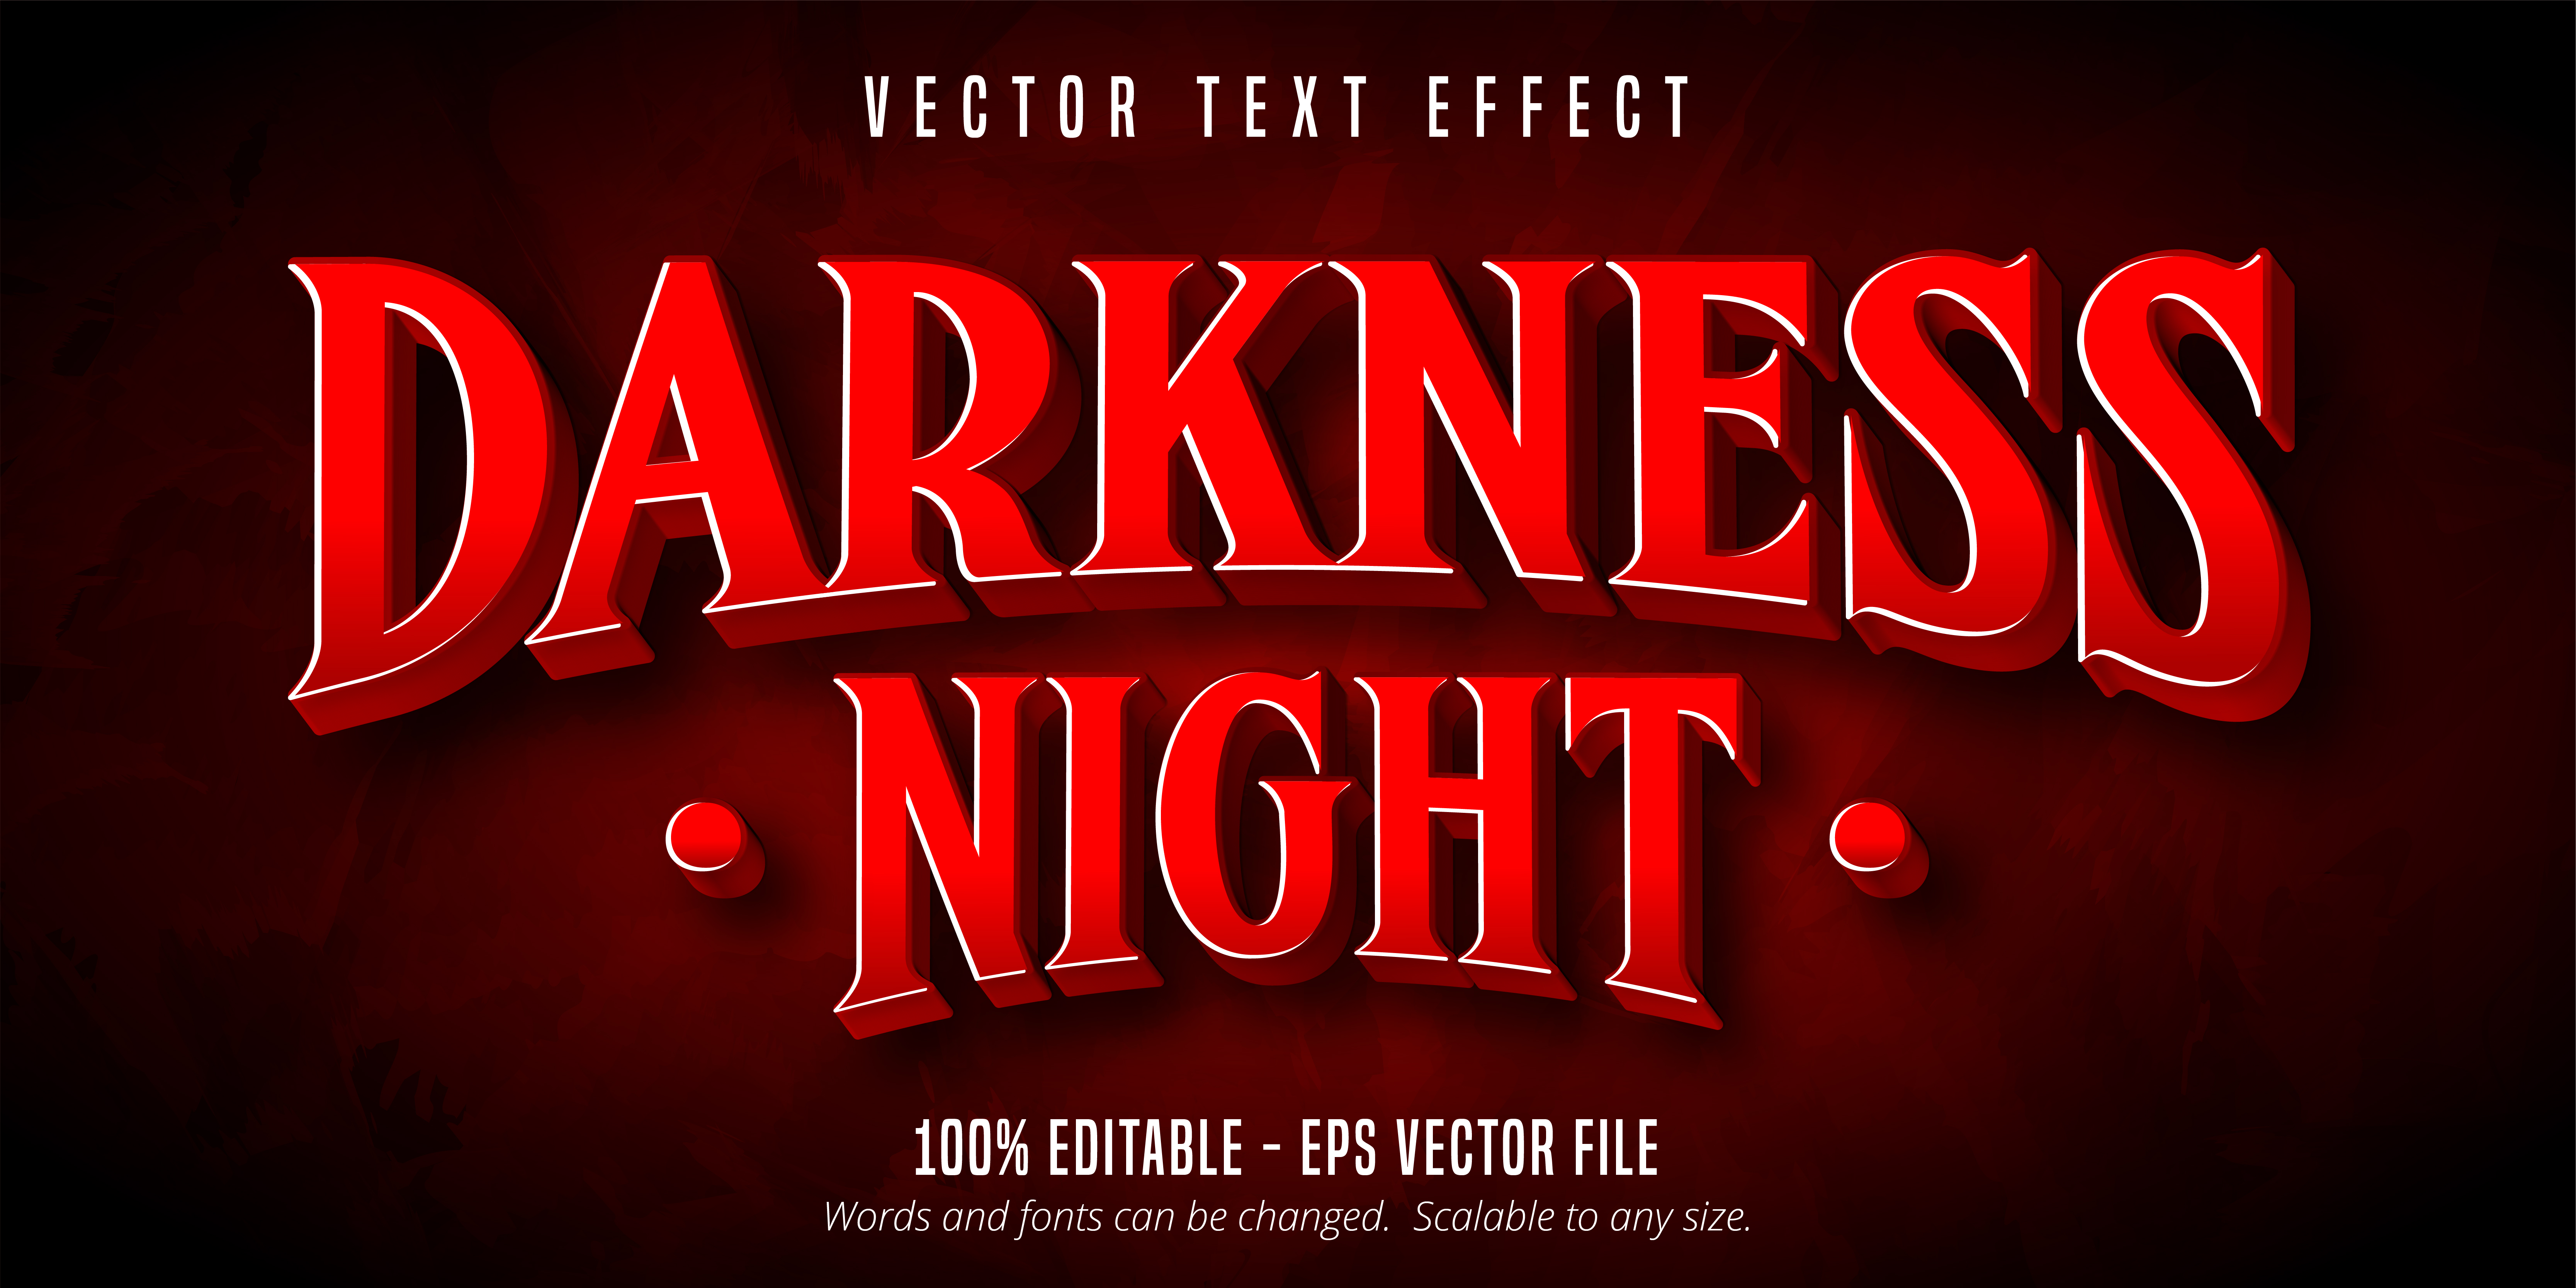 Darkness Night Text, Game Style Text Effect vector